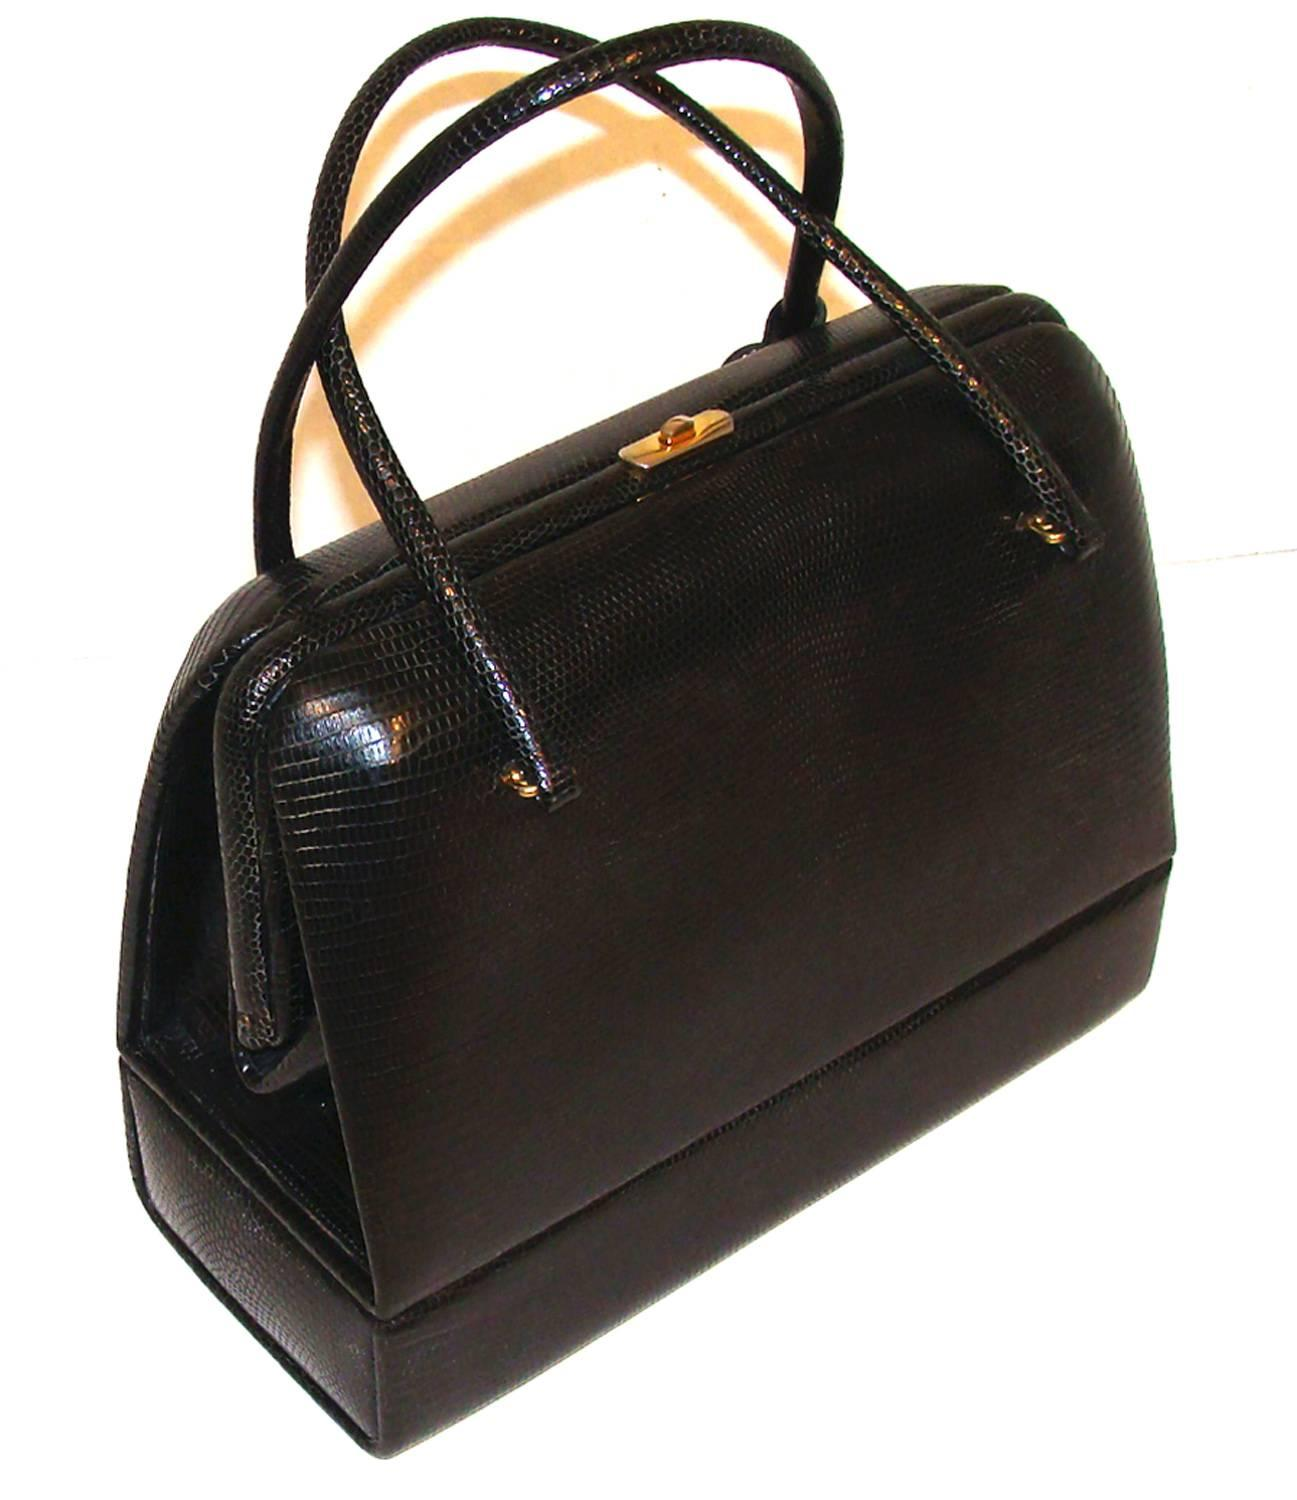 1stdibs Exquisite Black Lizard Bag With Jewelry Case (sac Mallette) With Key cqzkks